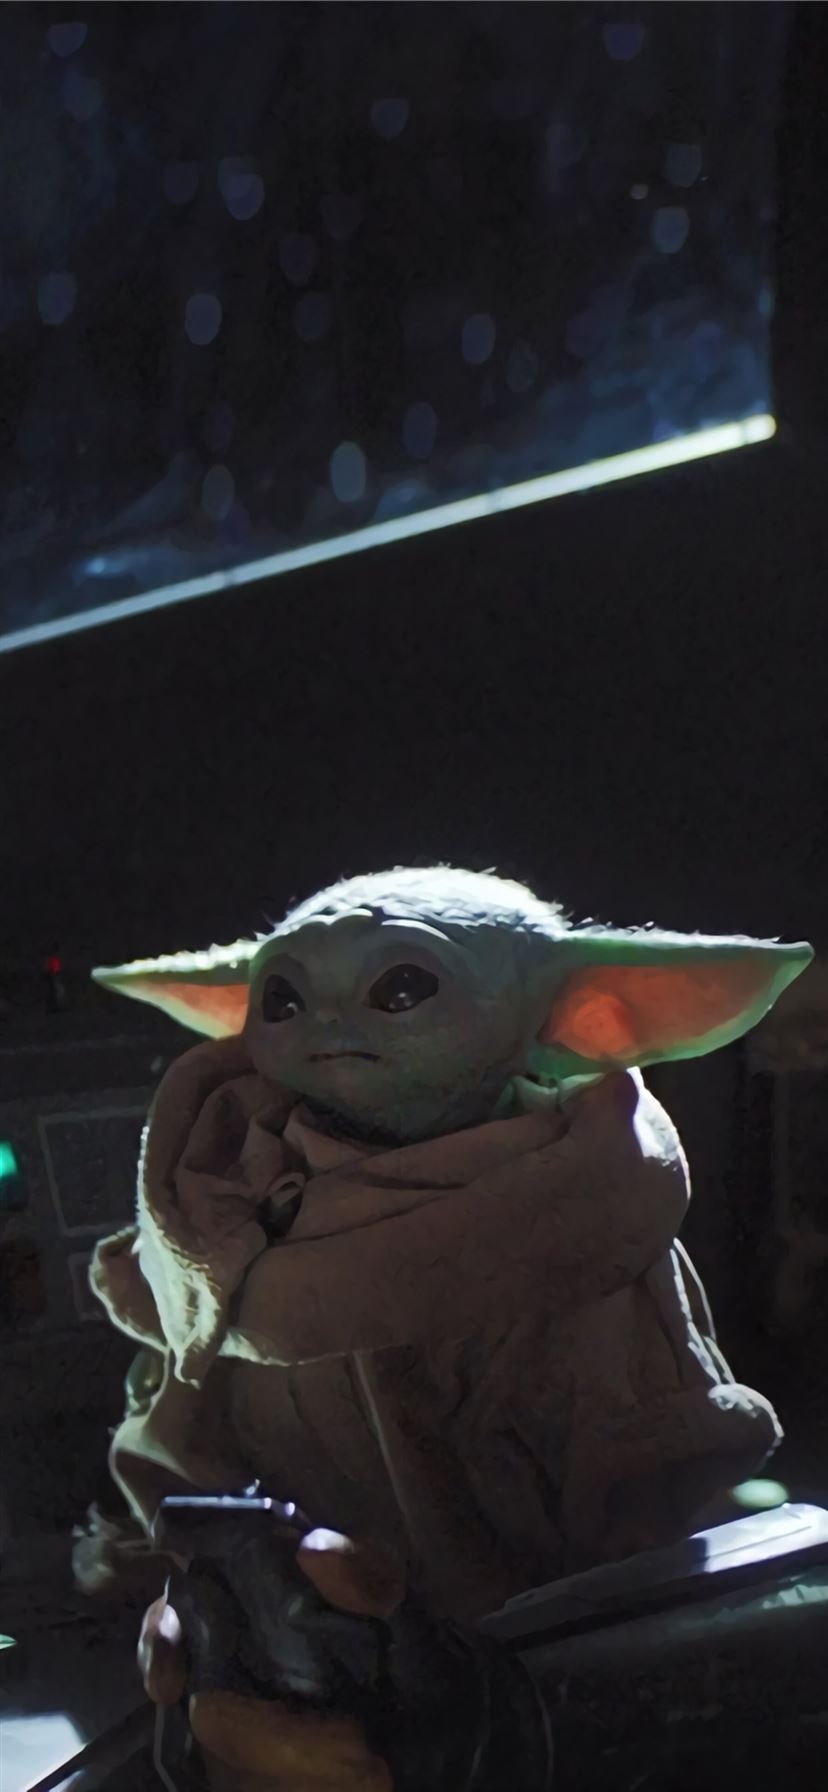 87 Baby Yoda And Images All Net Iphone 11 Wallpapers Free Download